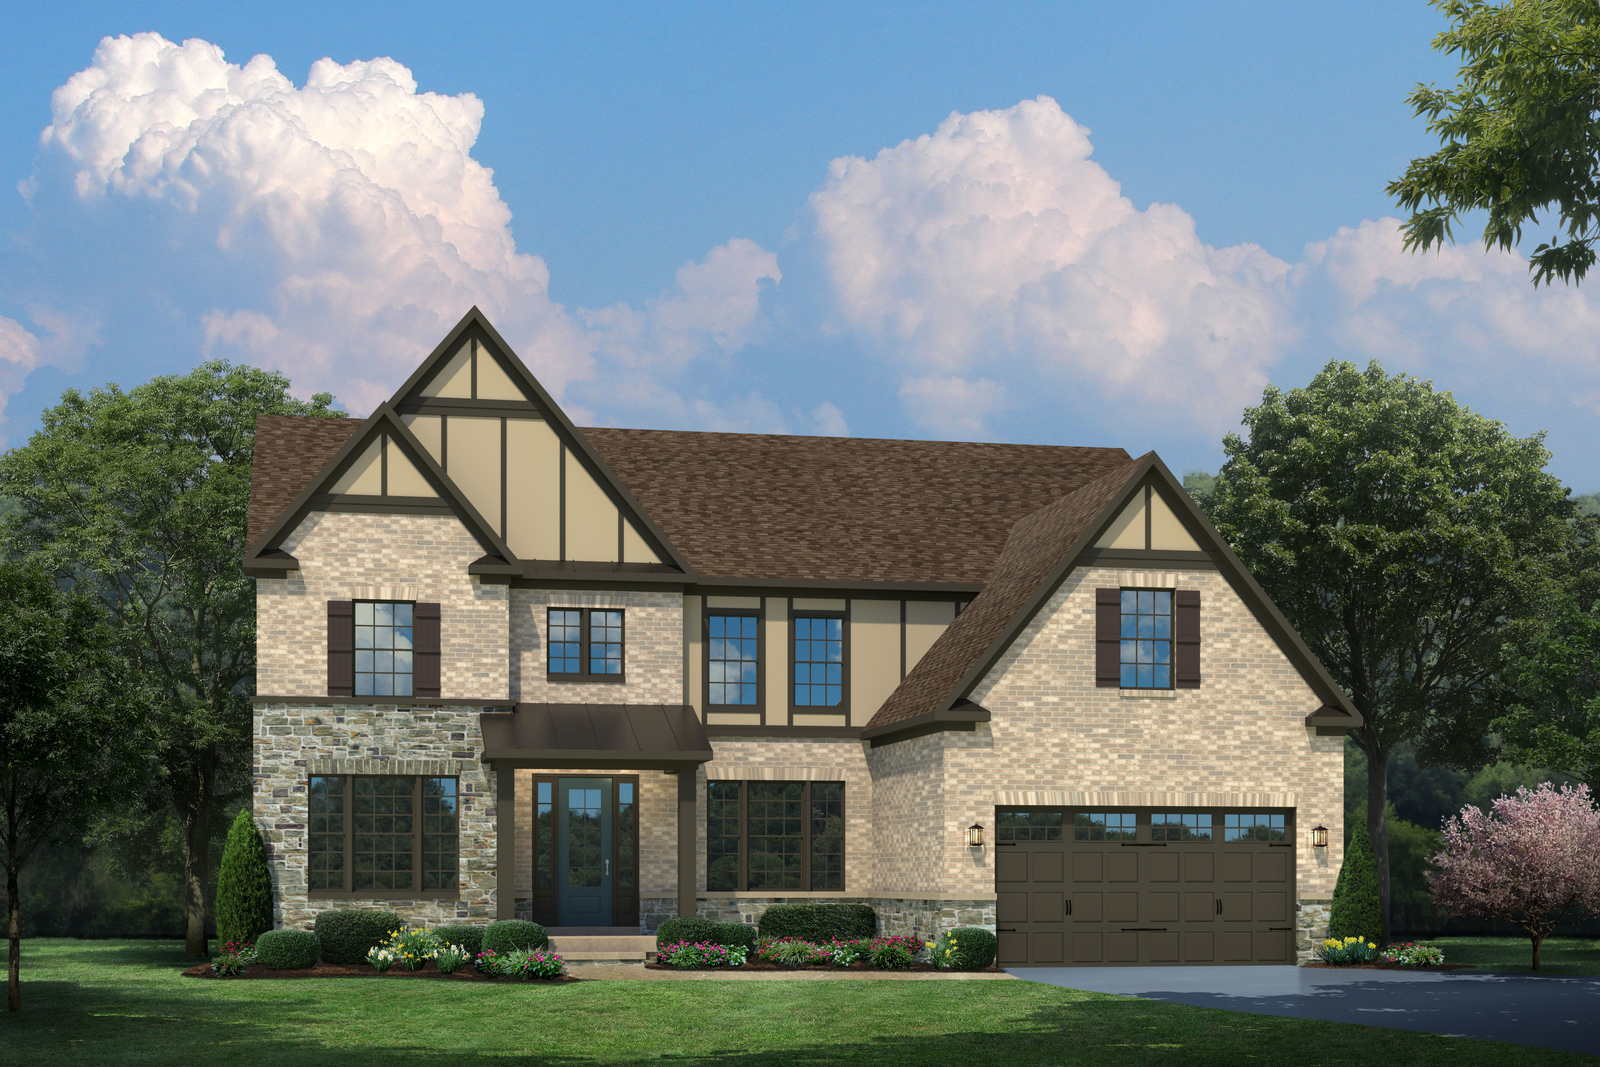 New radford home model for sale heartland homes for Heartland homes pittsburgh floor plans